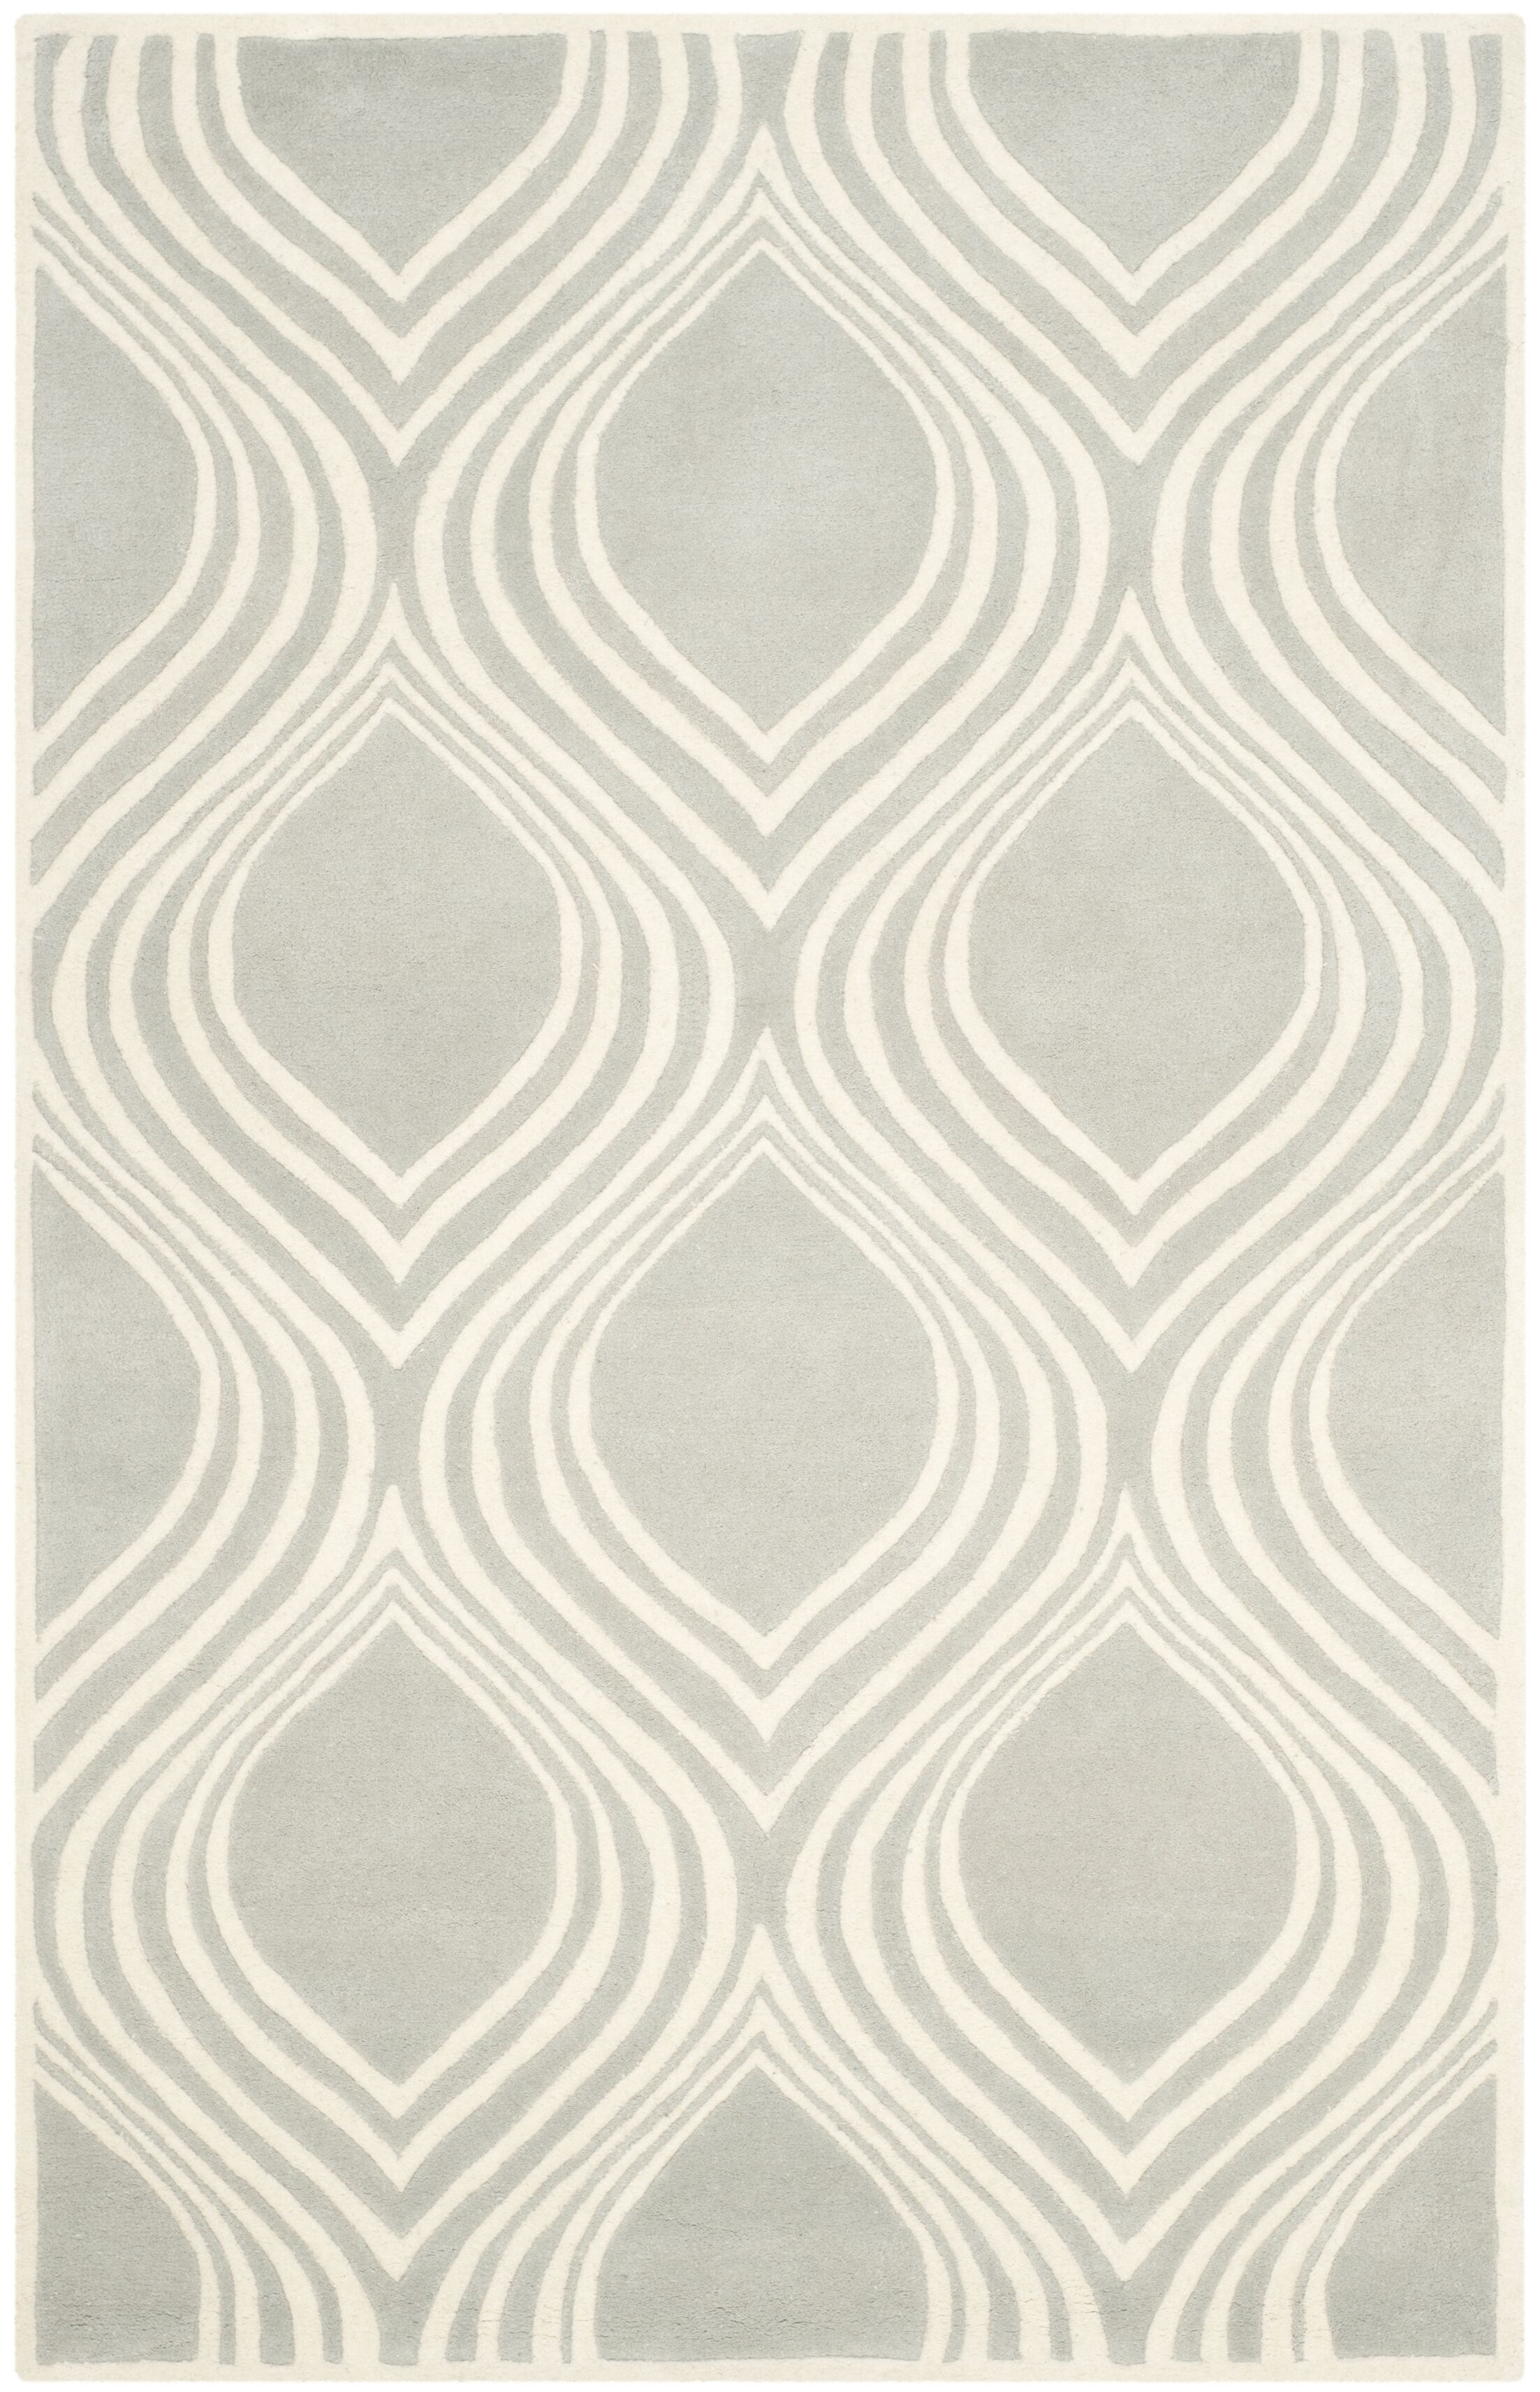 Wilkin Gray/Ivory Area Rug Rug Size: Rectangle 8' x 10'